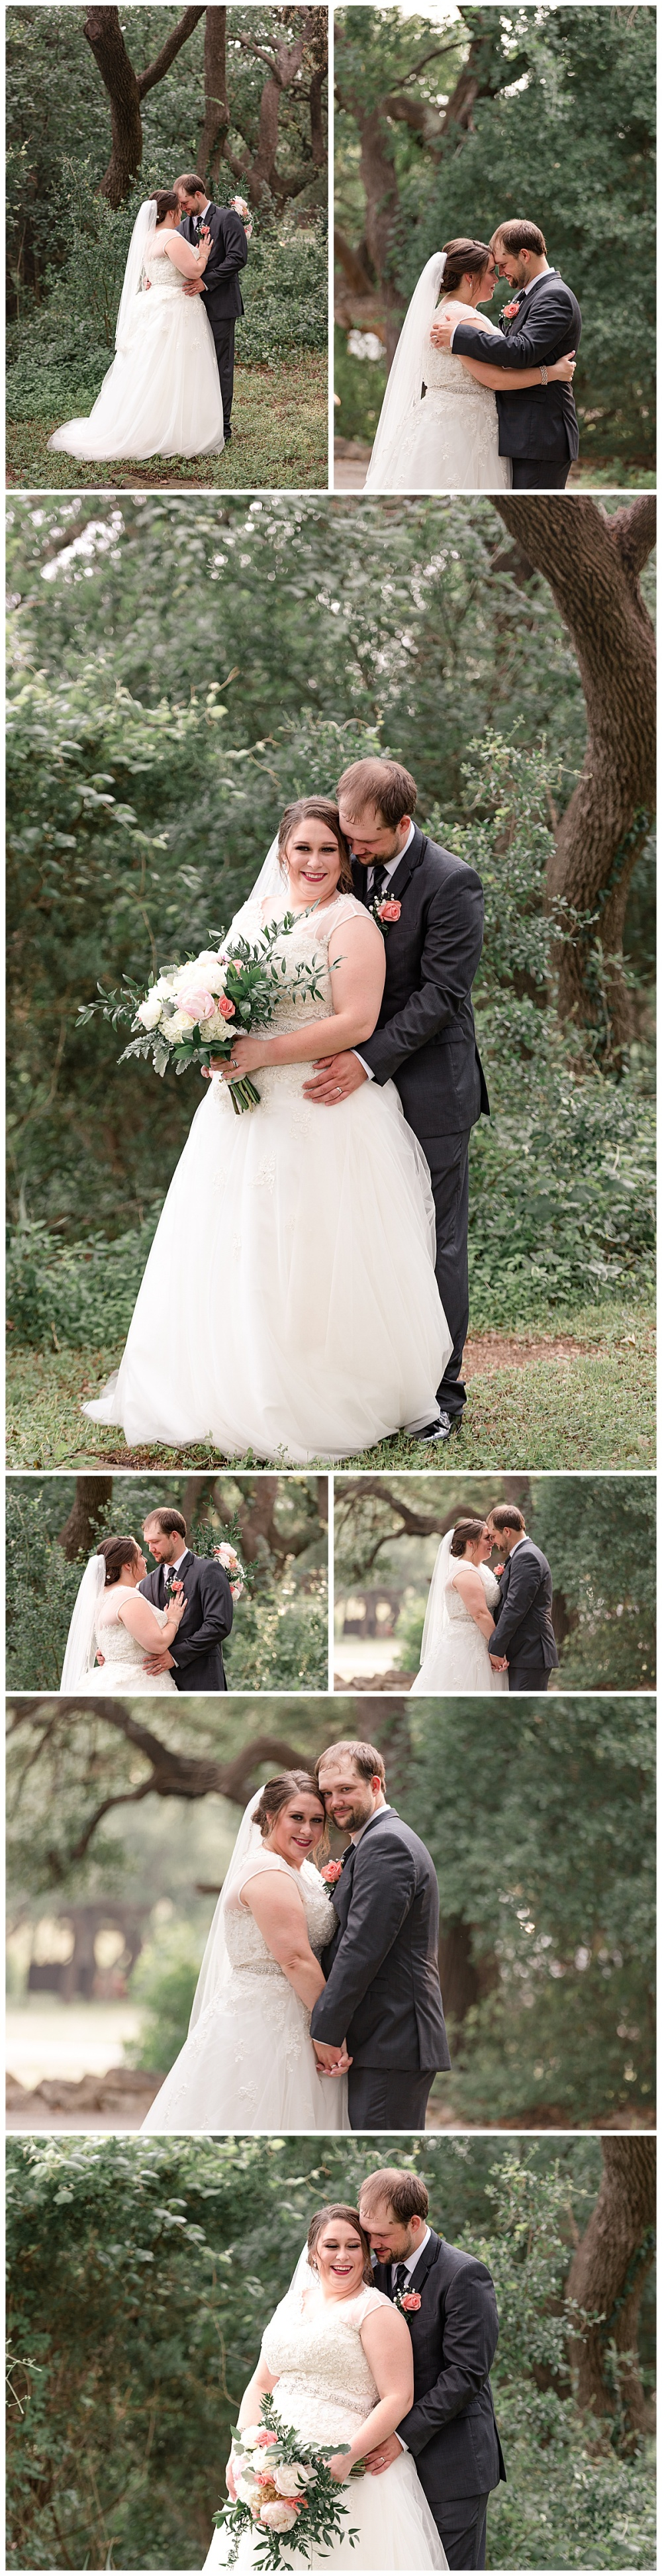 Michael-Tiffany-Wedding-New-Braunfels-Texas-Canyon-Lake-Cabins-and-Cottages-Carly-Barton-Photography_0035.jpg